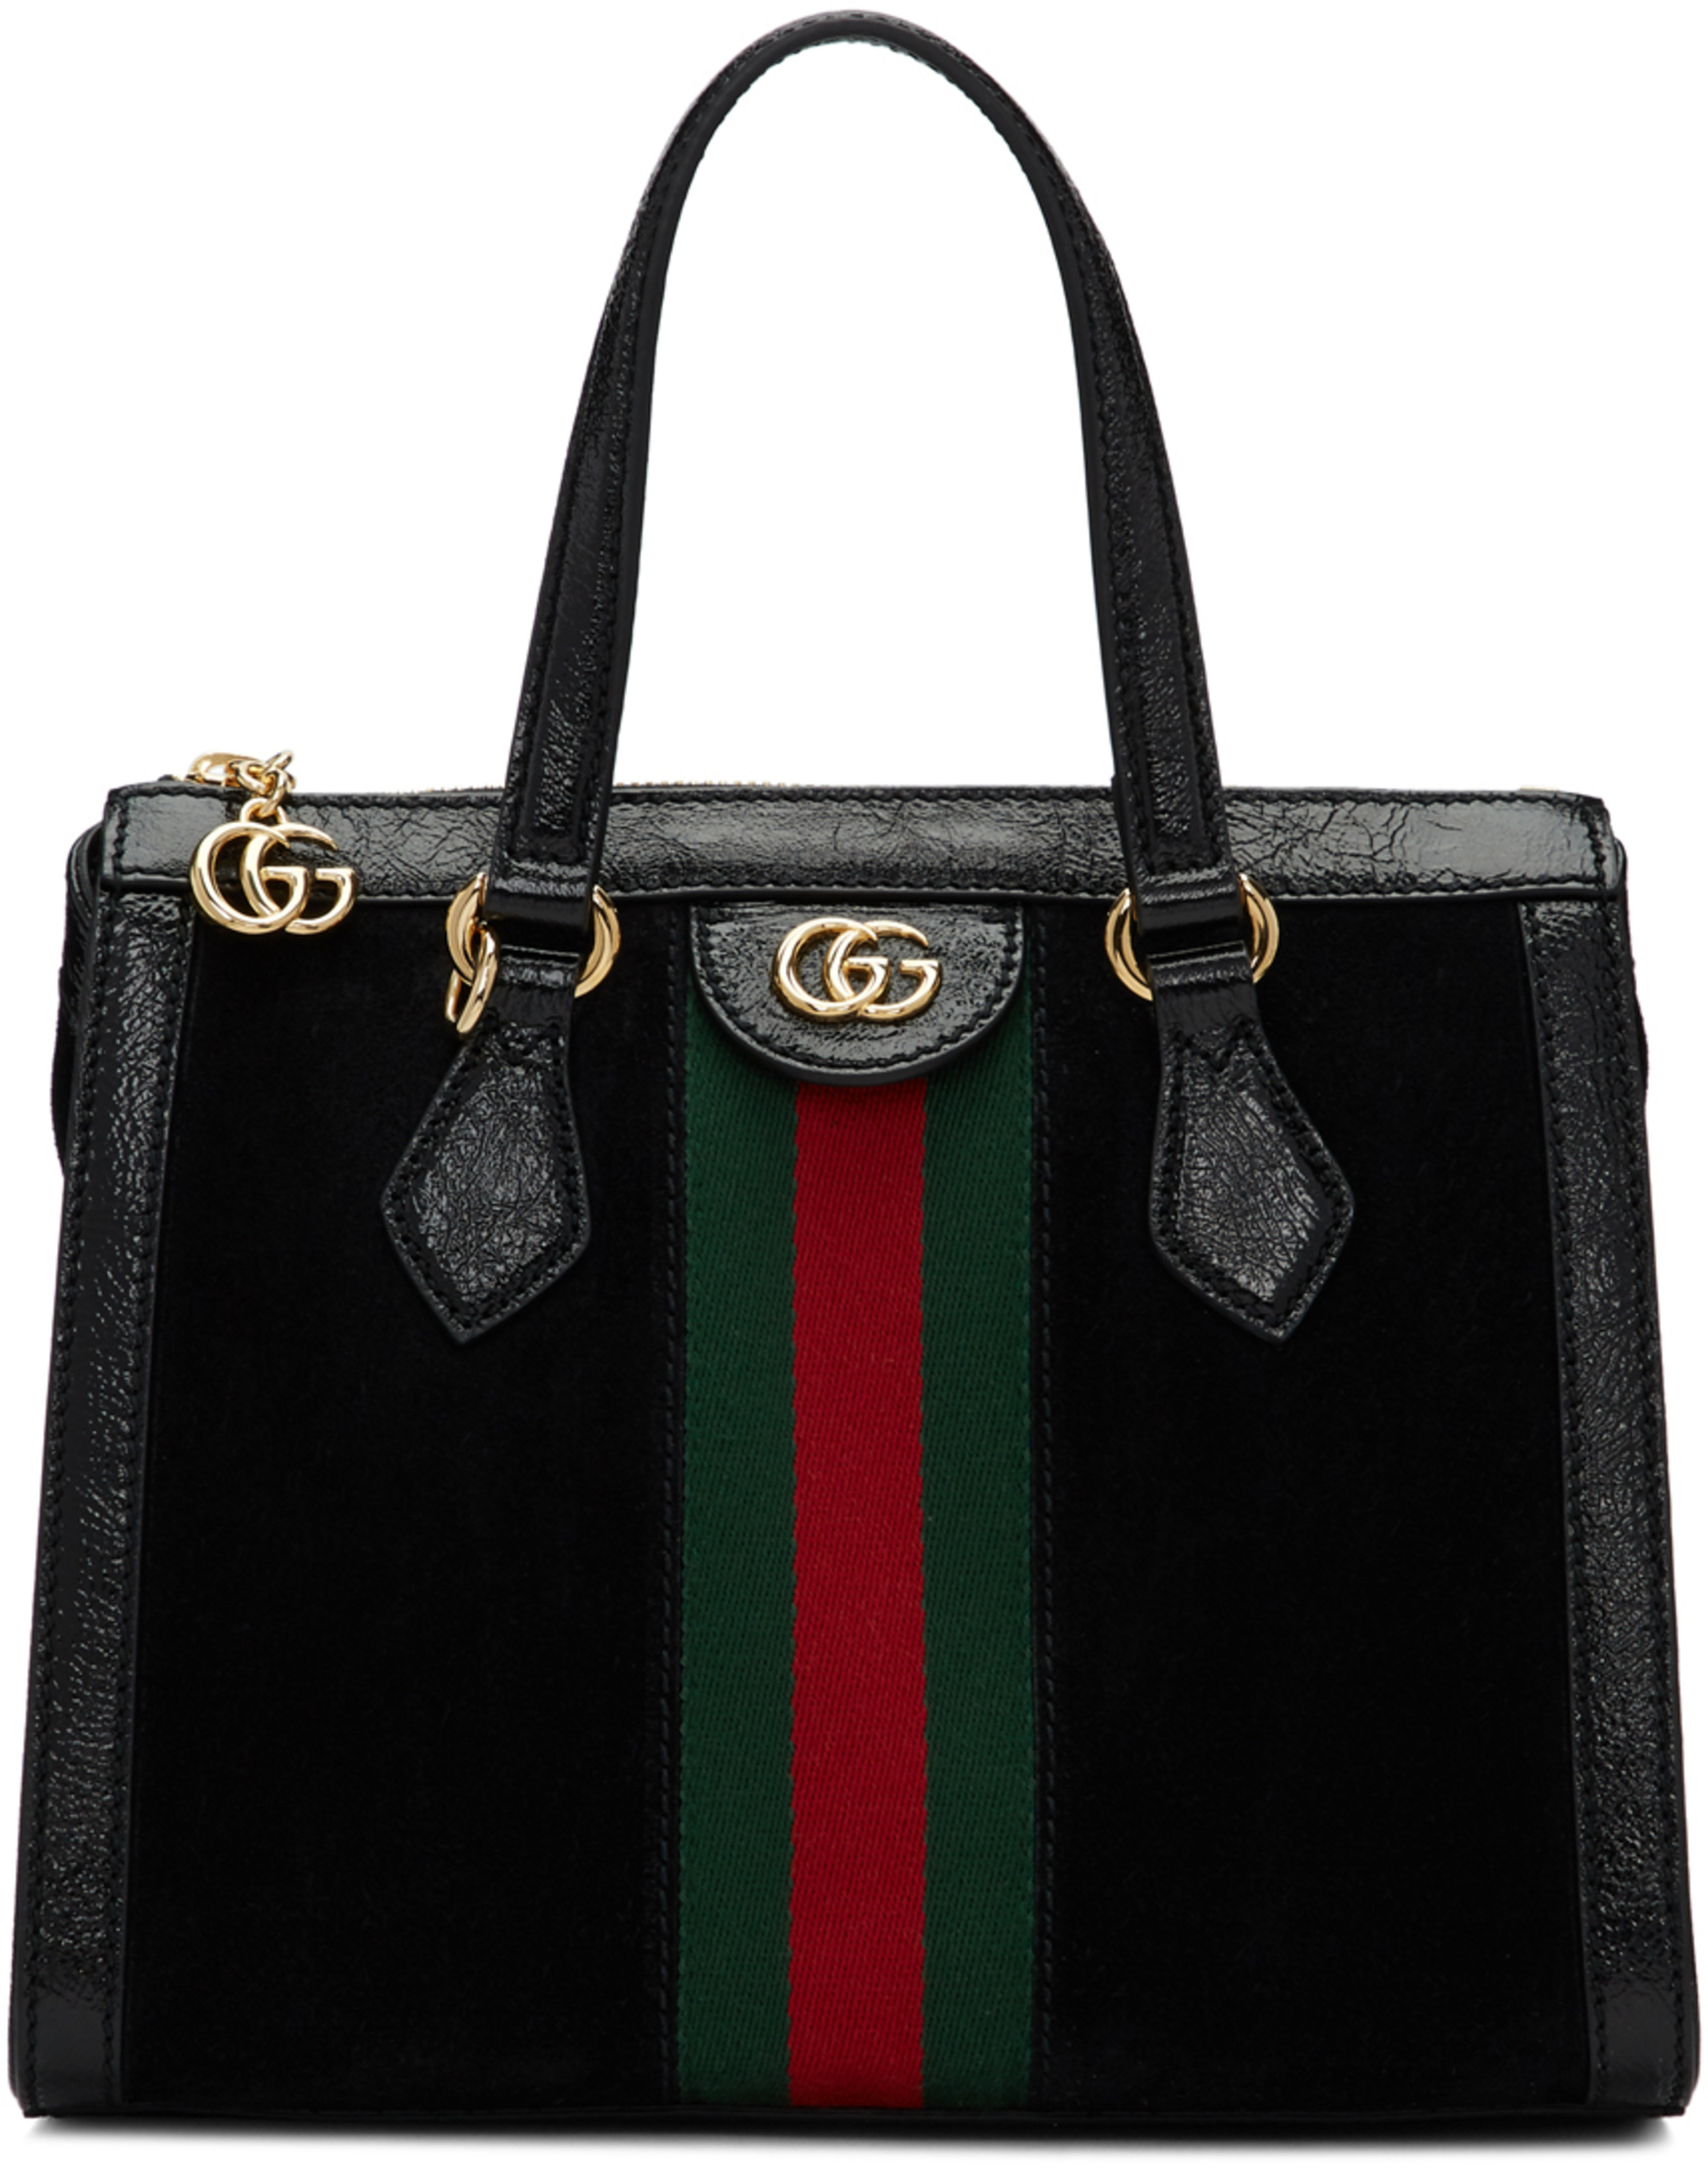 e014580c7d62 Gucci bags for Women